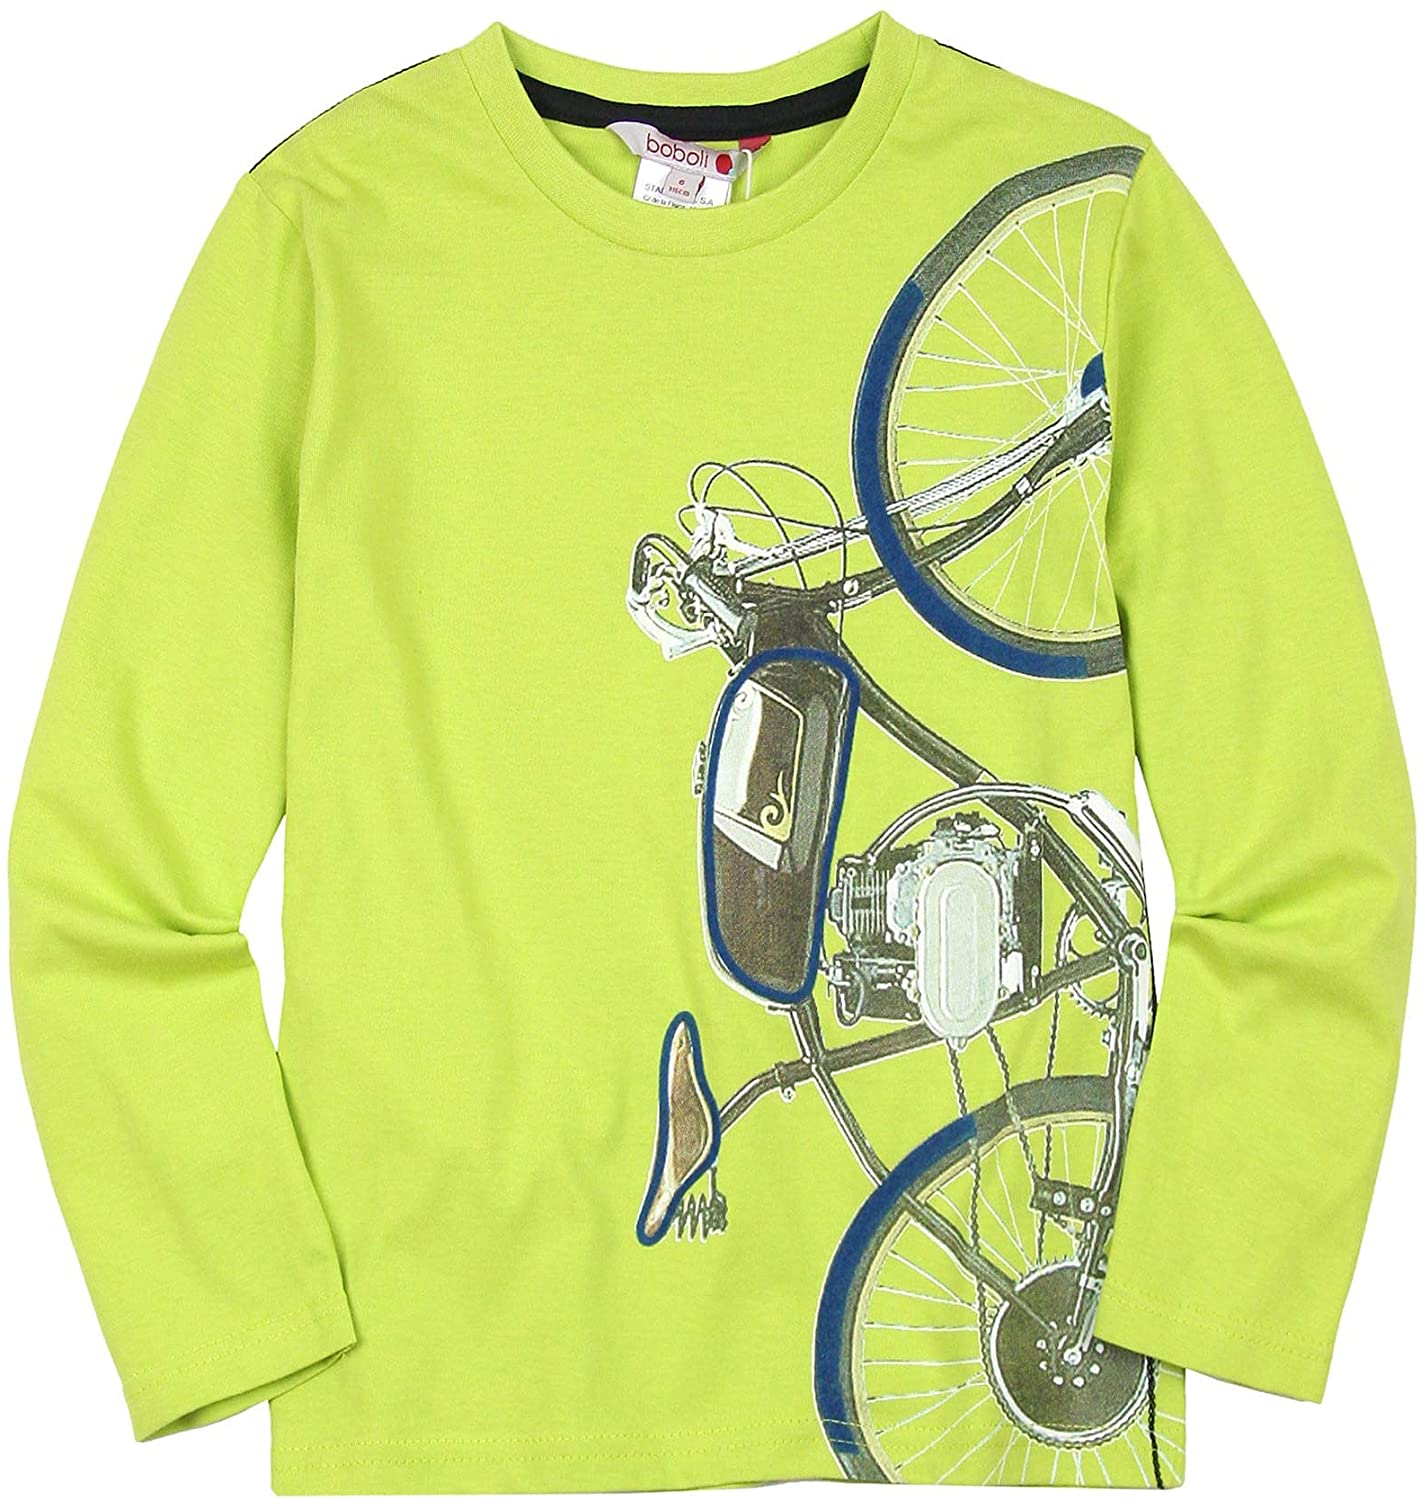 Boboli Boys T-Shirt with Bicycle Print, Sizes 4-16